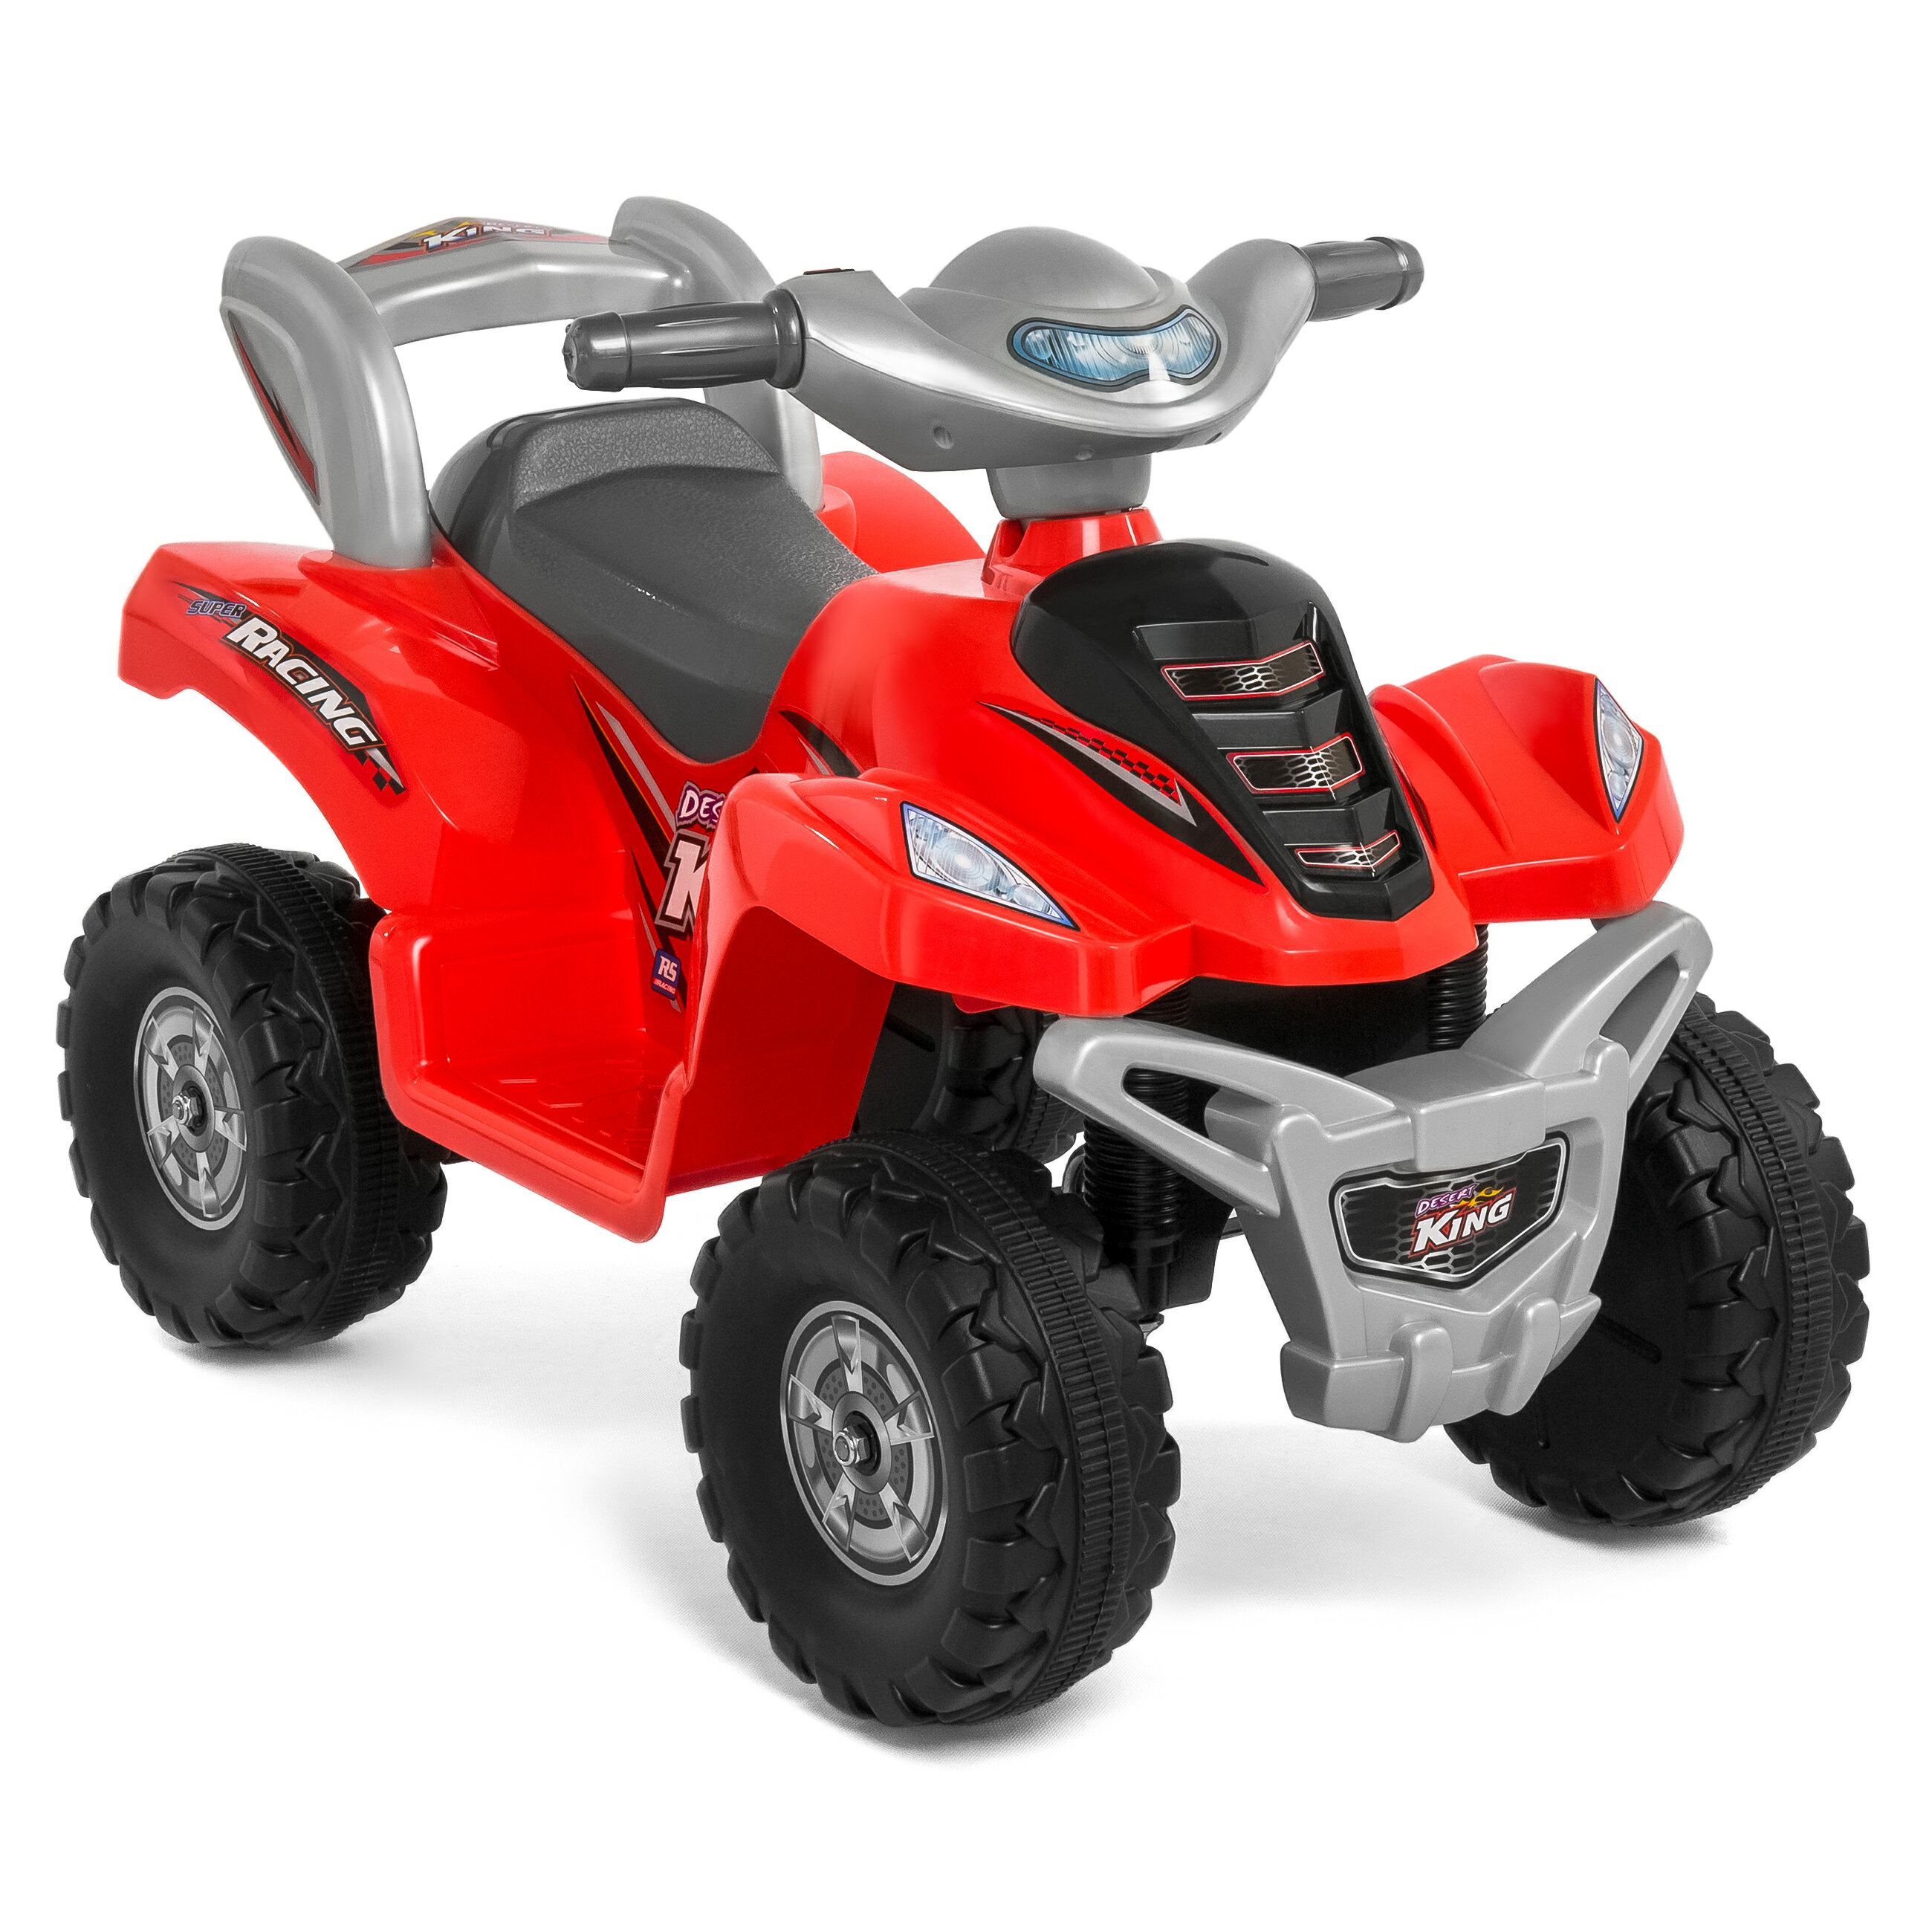 59da1427a Best Choice Products Kids 6V Battery-Powered Electric Toy ATV Ride-On Quad  Car